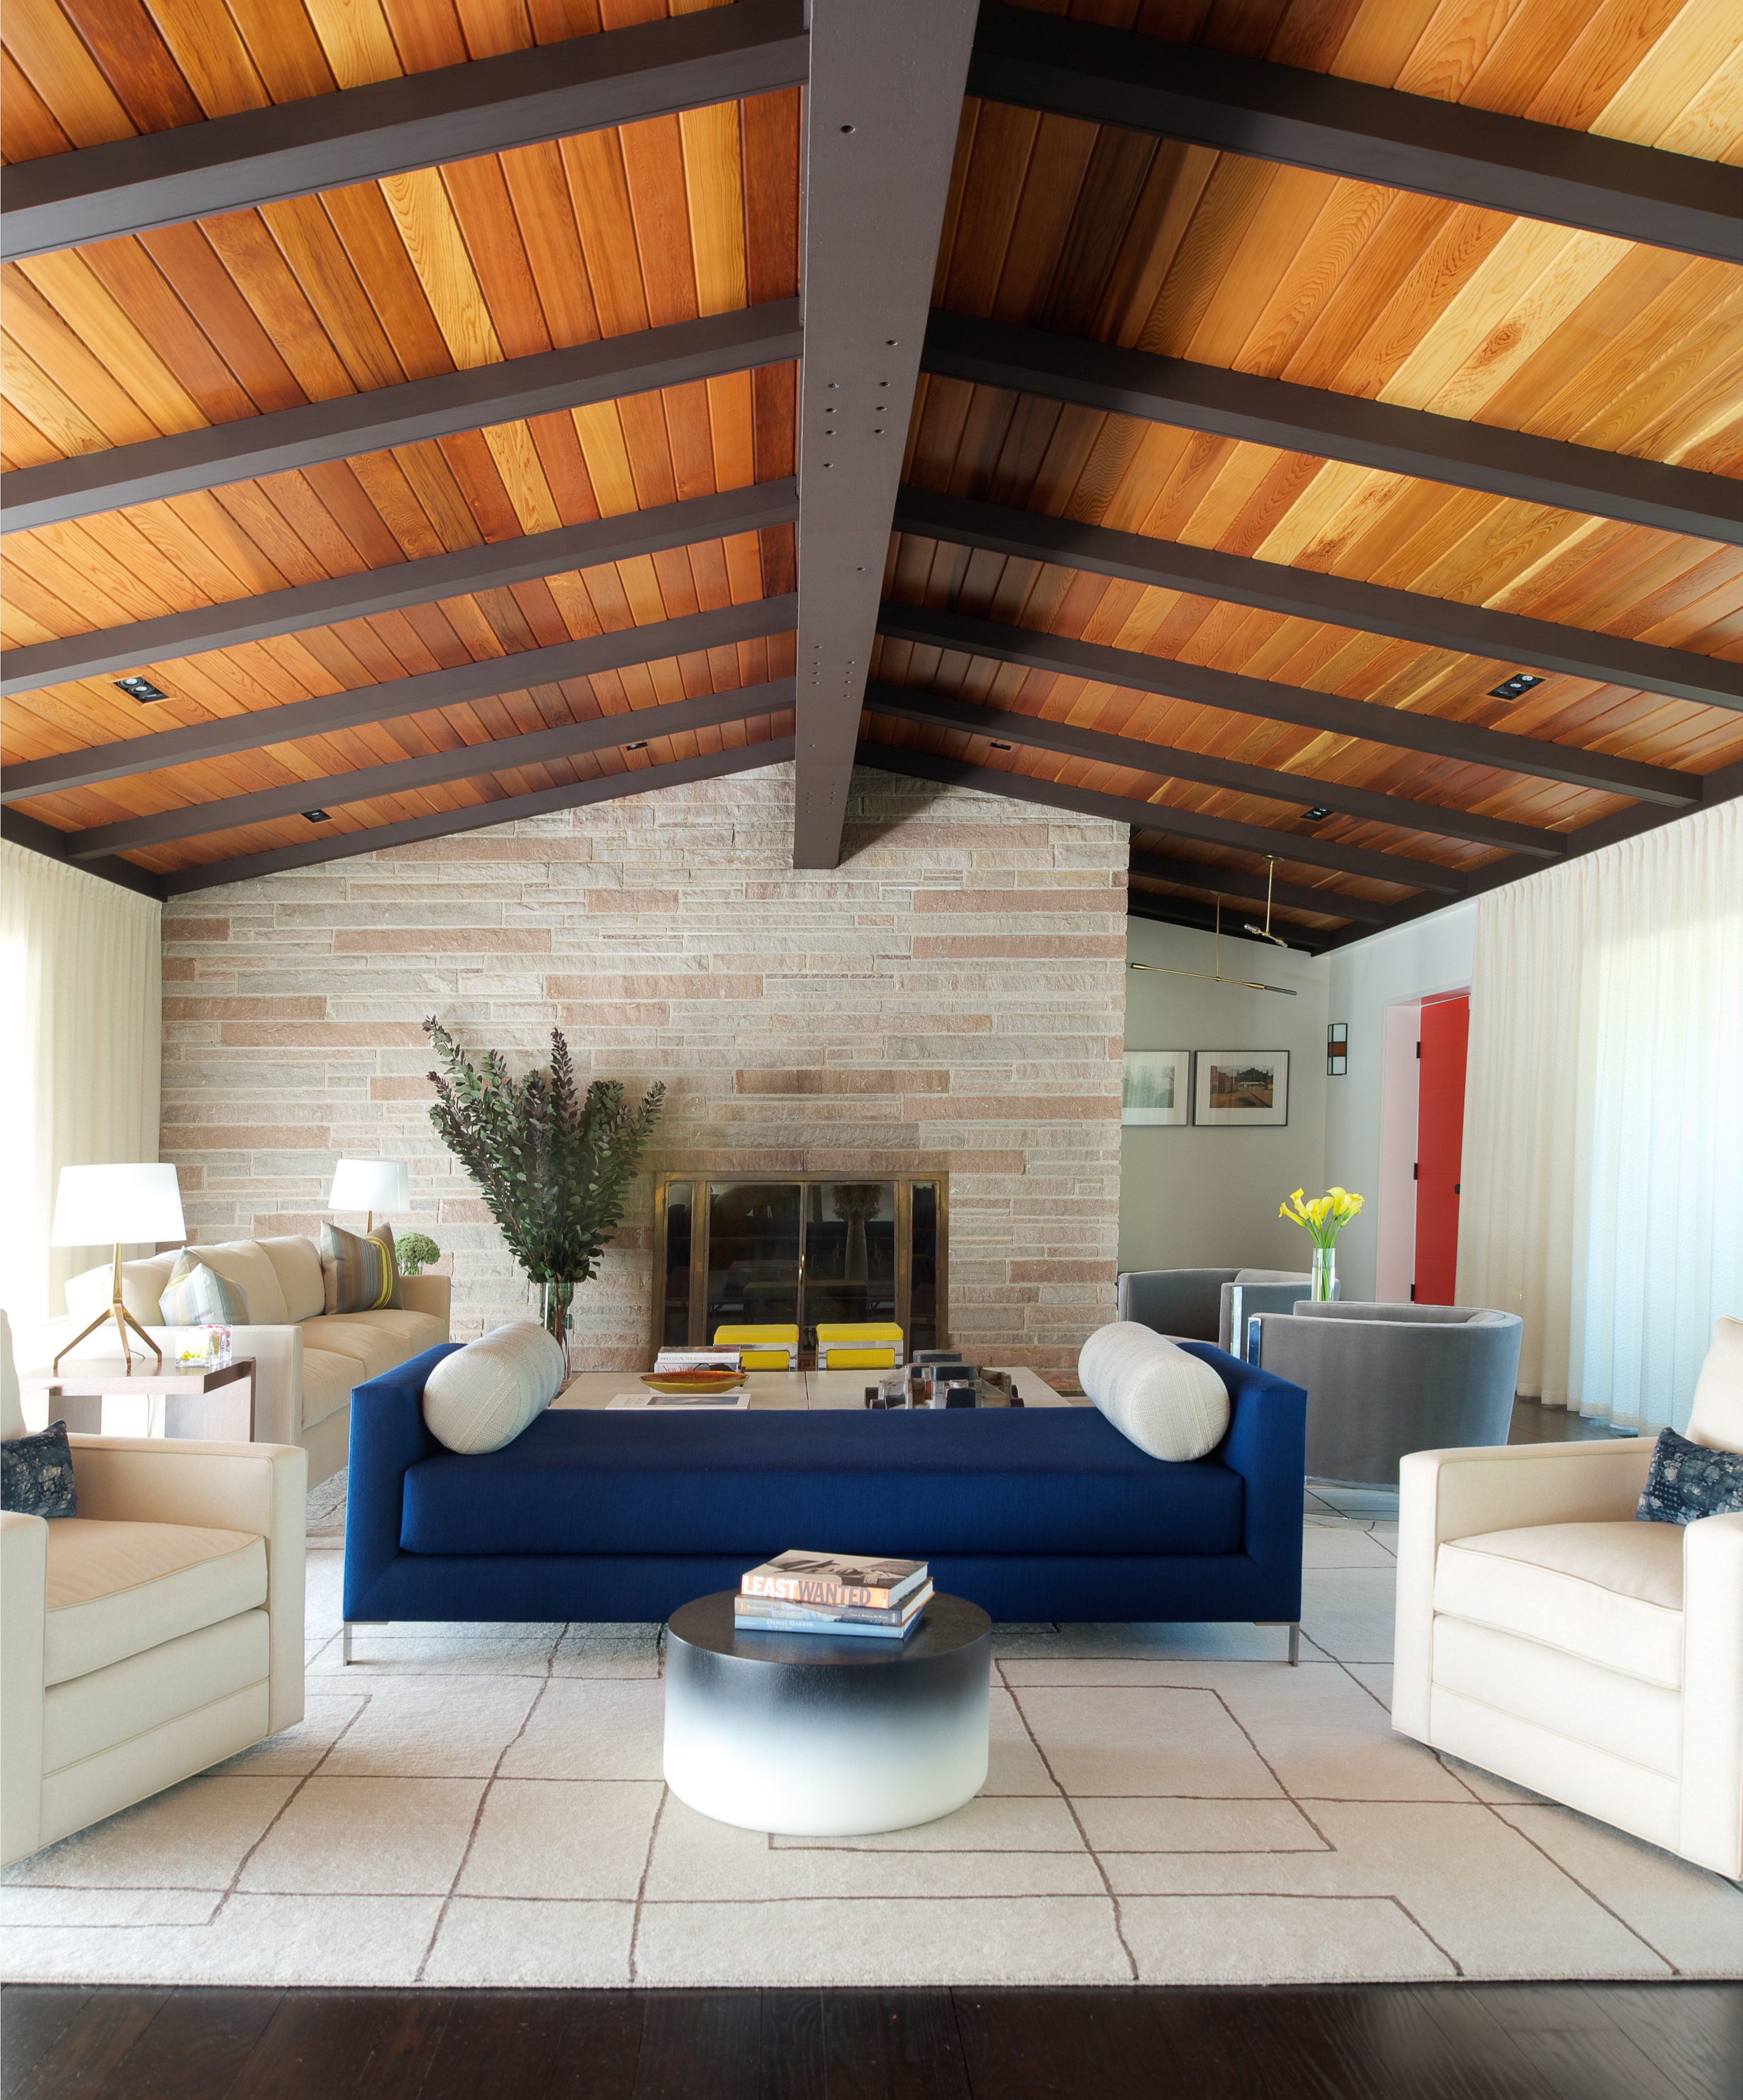 Stonefox Residence with cedar ceiling panels